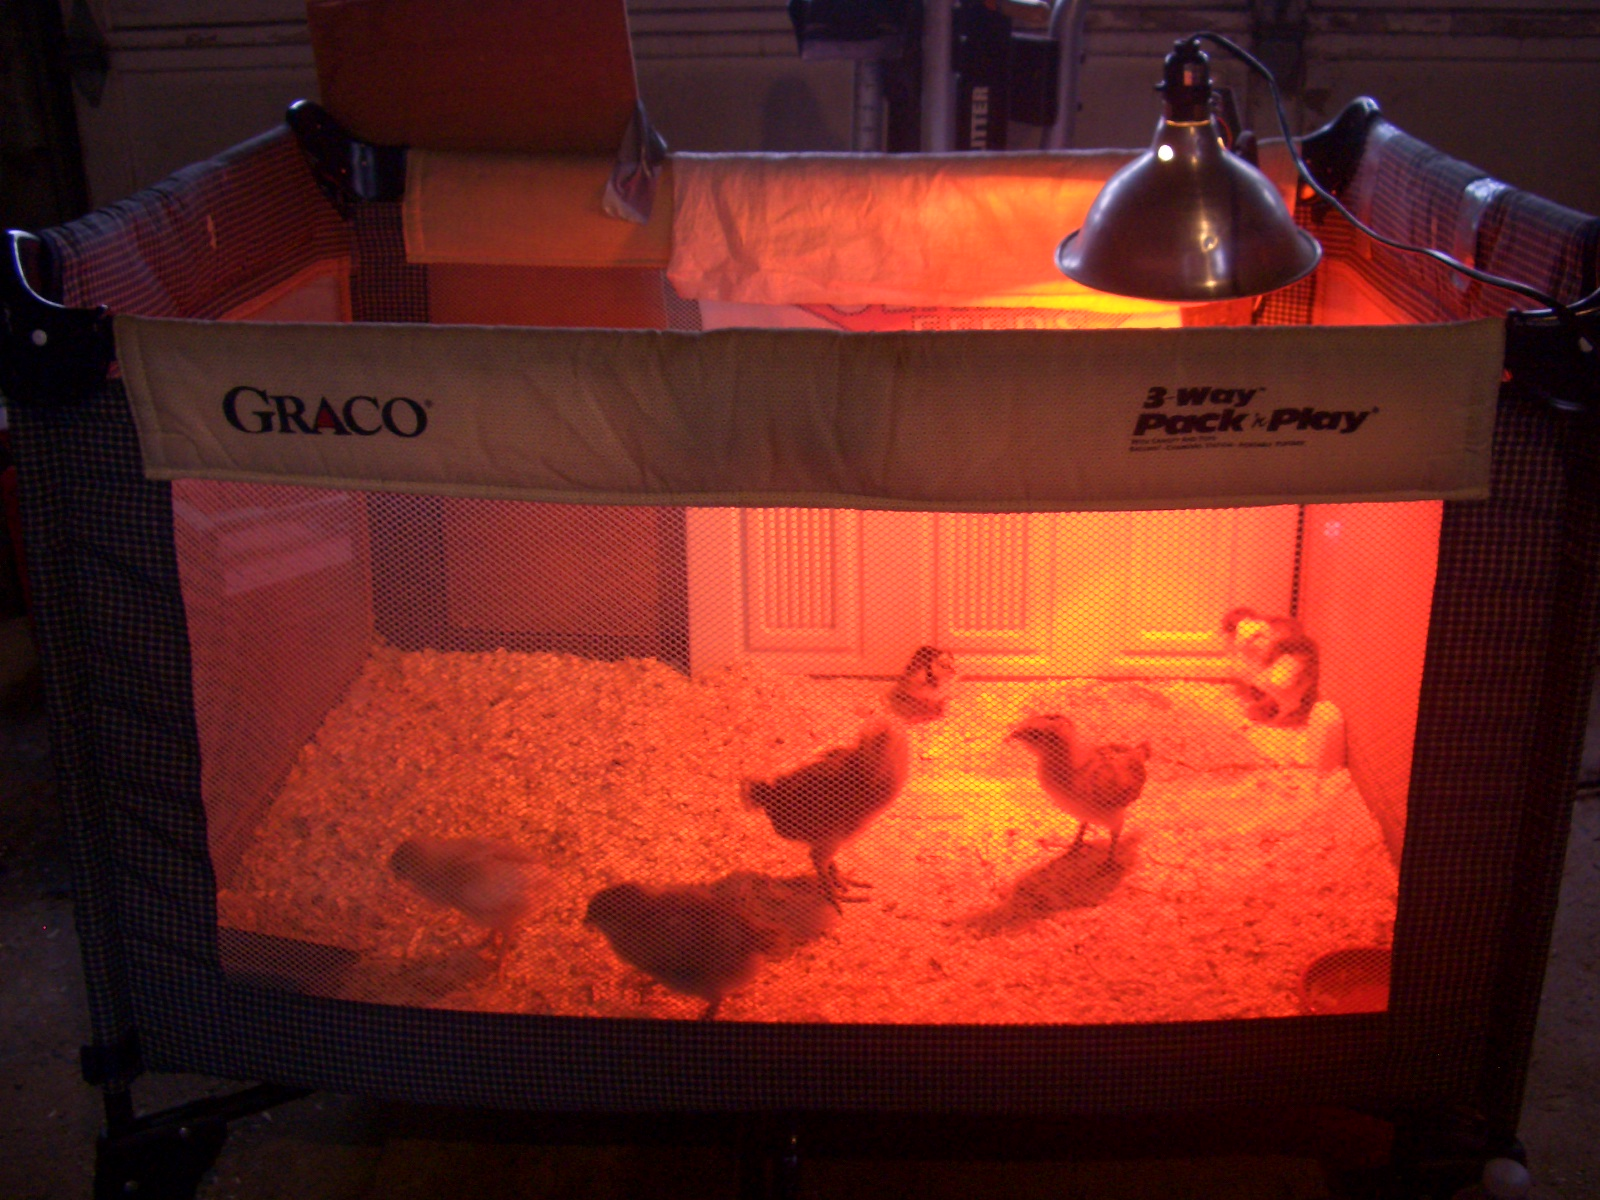 ... Of The Heat Lamp. The Play Pen Is Working Perfectly And Will Hopefully  House The Chicks Until They Are Old Enough To Be Moved In Permanently With  Lizzy.